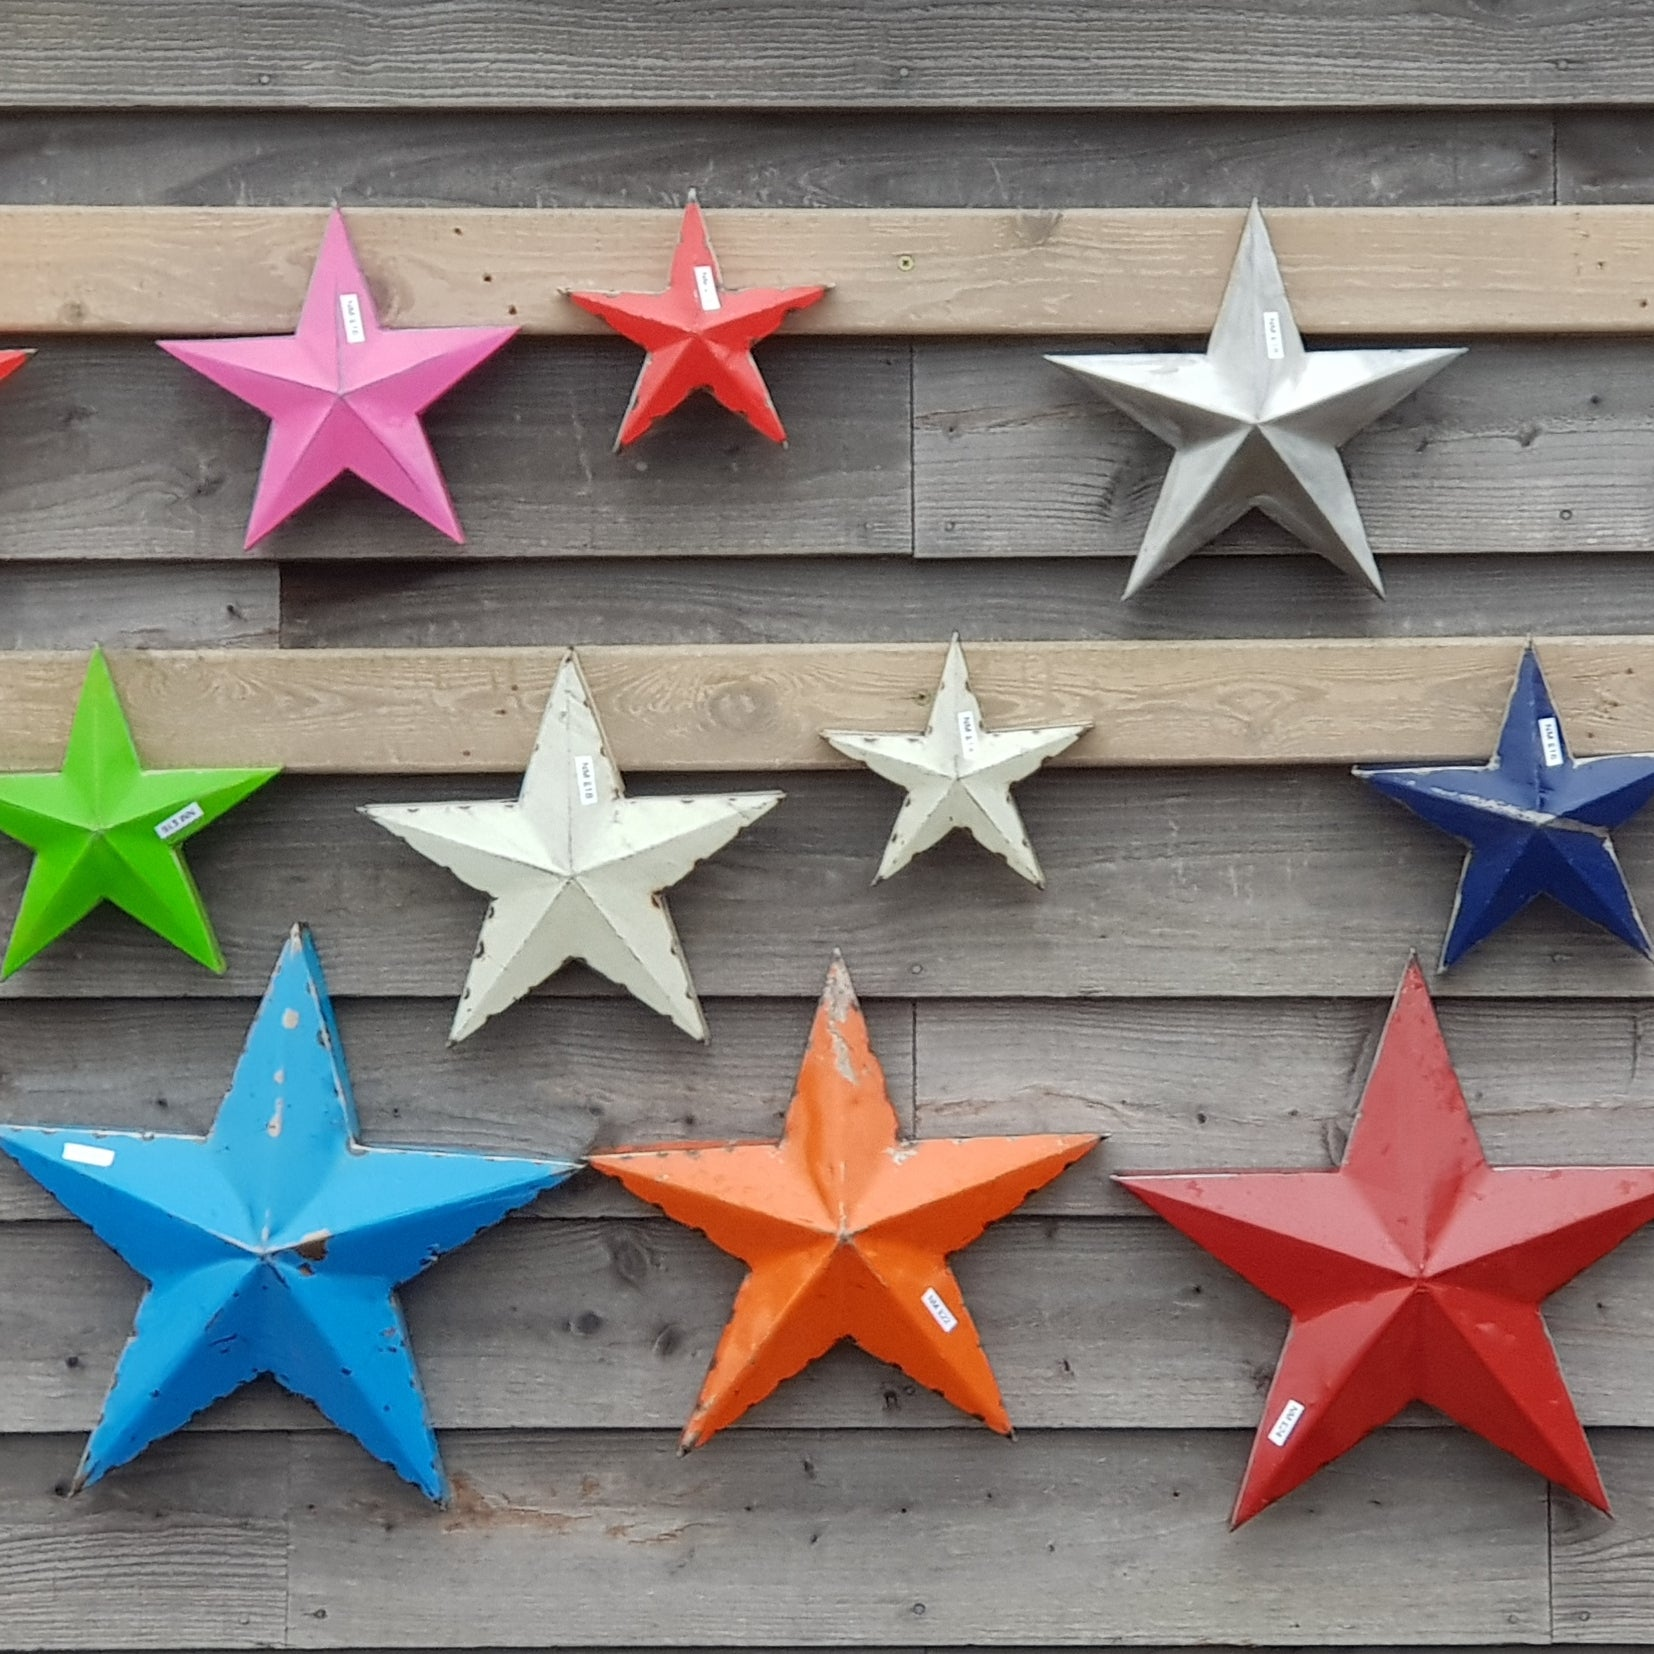 Steel stars made from oil drums